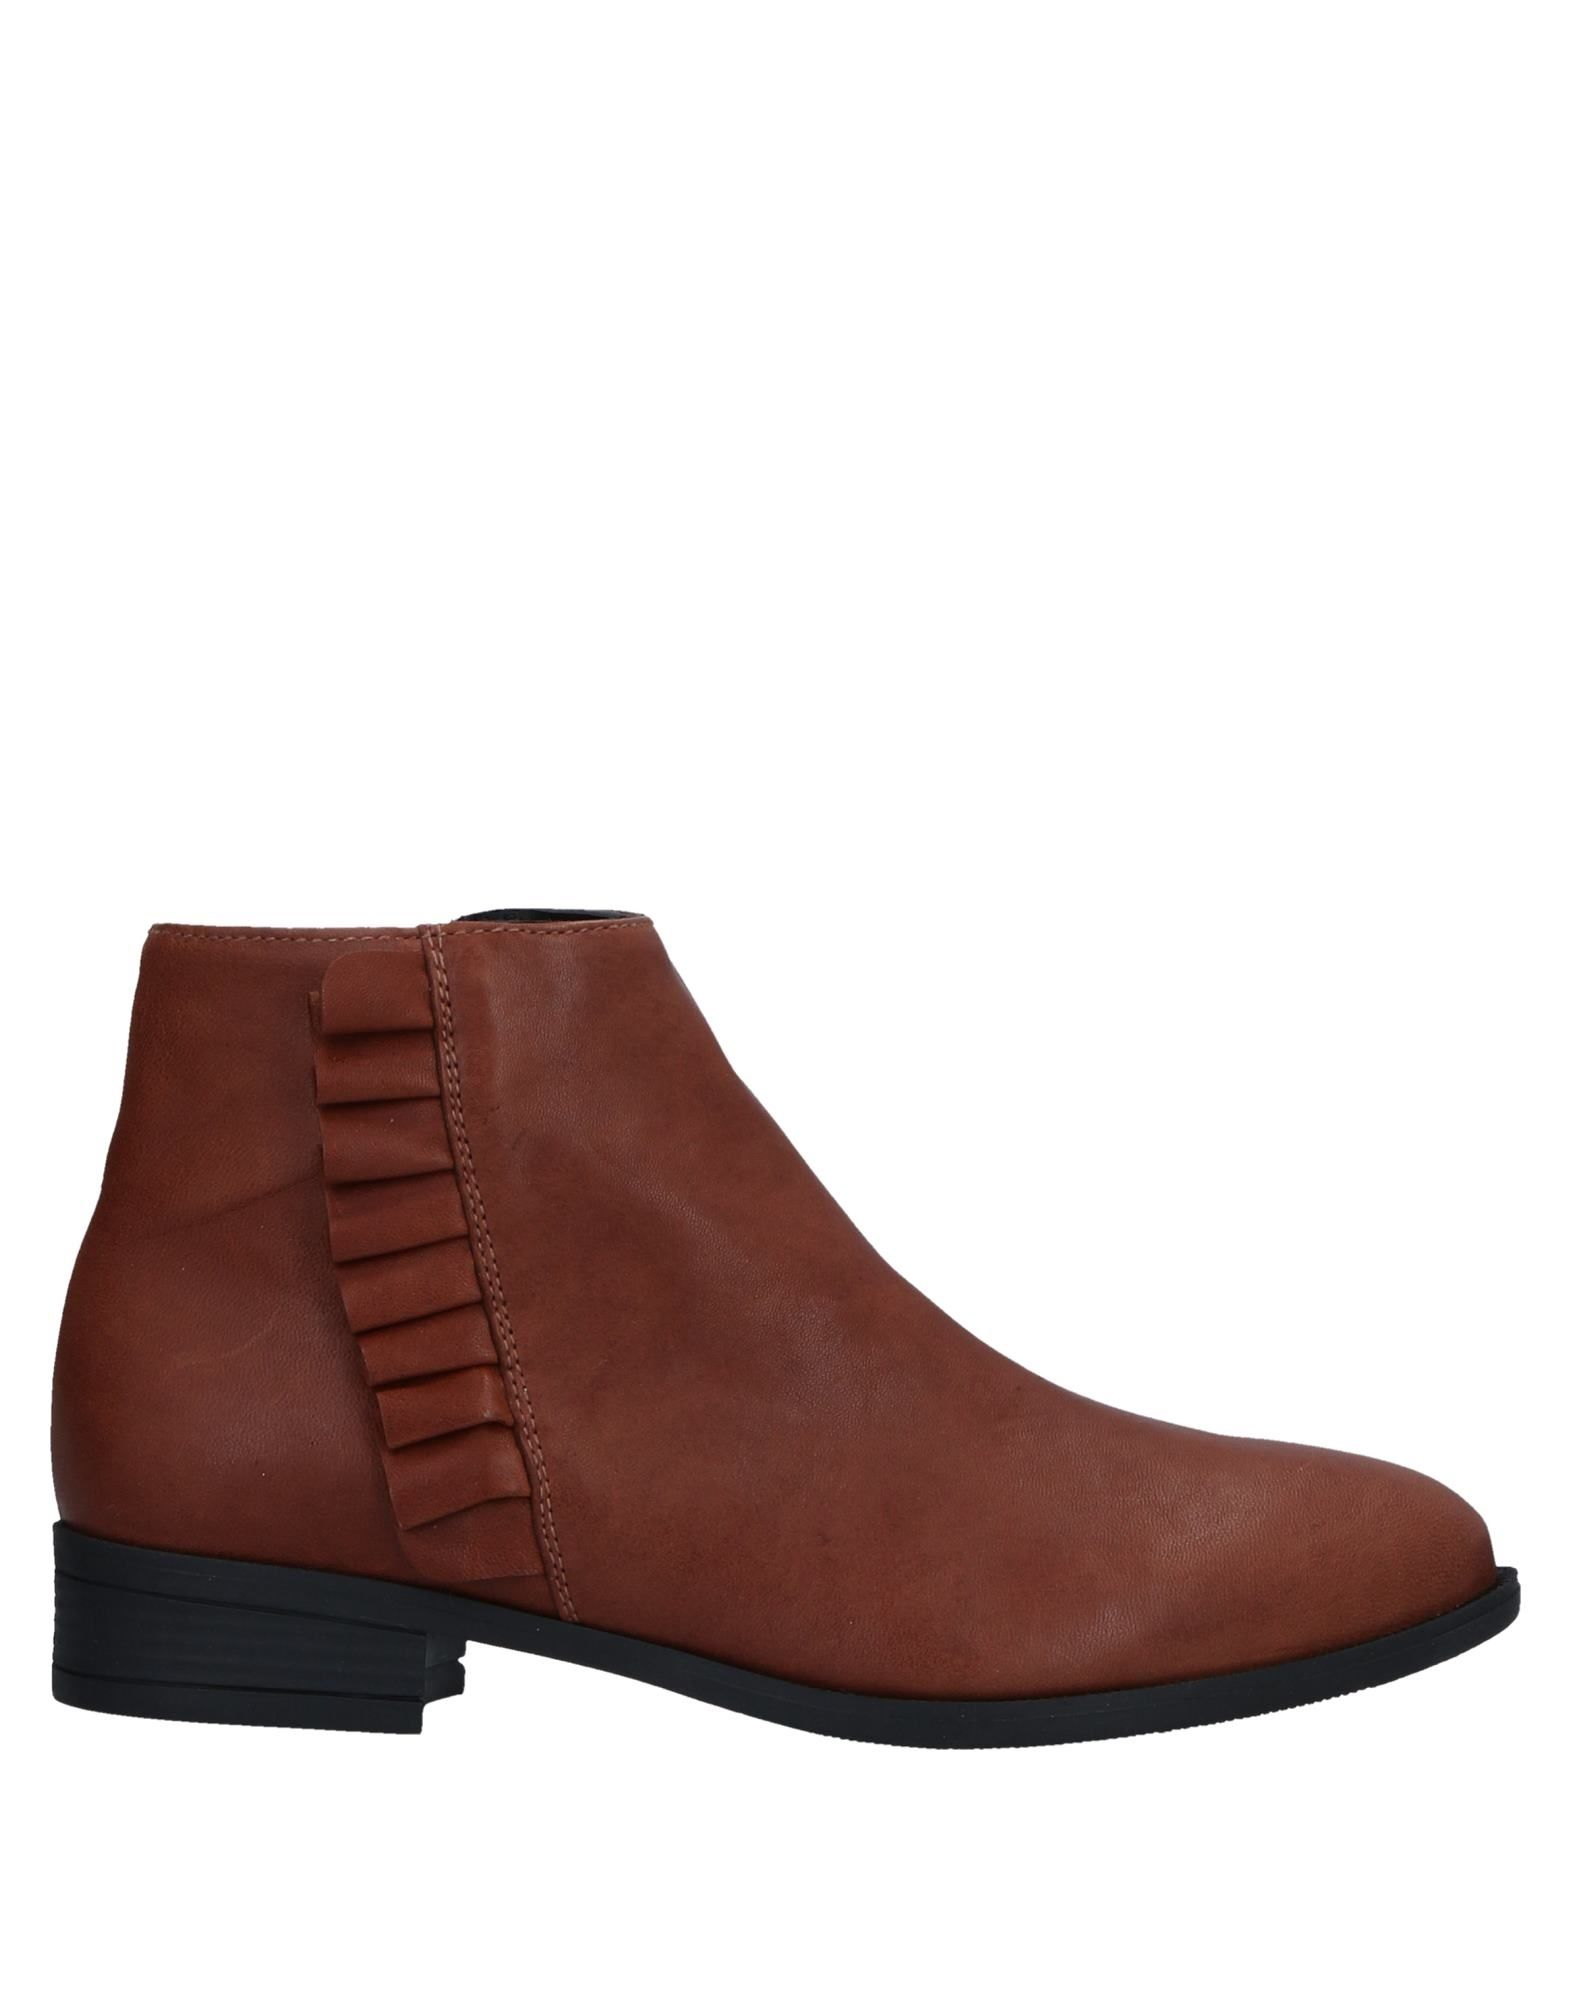 Gaimo on Ankle Boot - Women Gaimo Ankle Boots online on Gaimo  Australia - 11515199UO 51098d